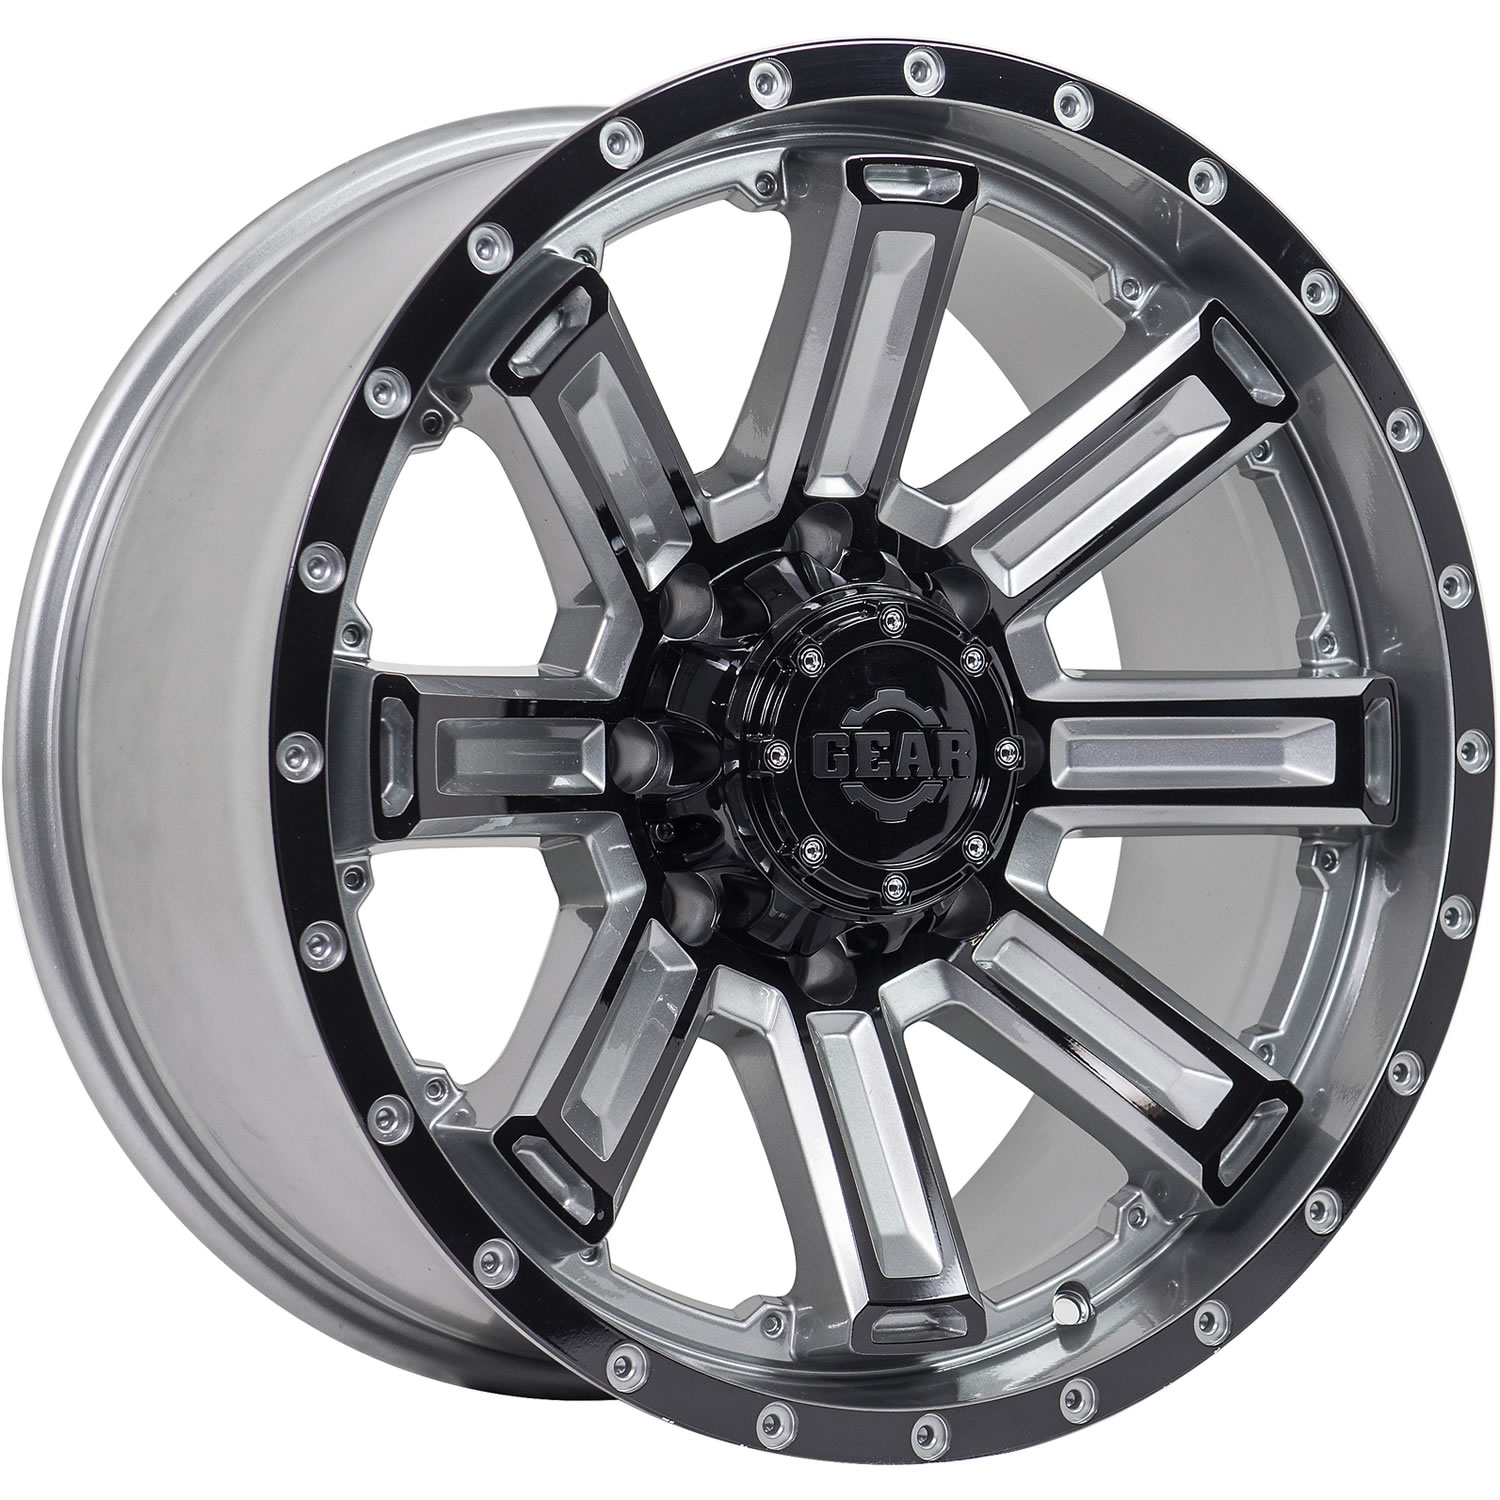 Gear Off-Road Switchback738GB 18x9 10 - Product reviews